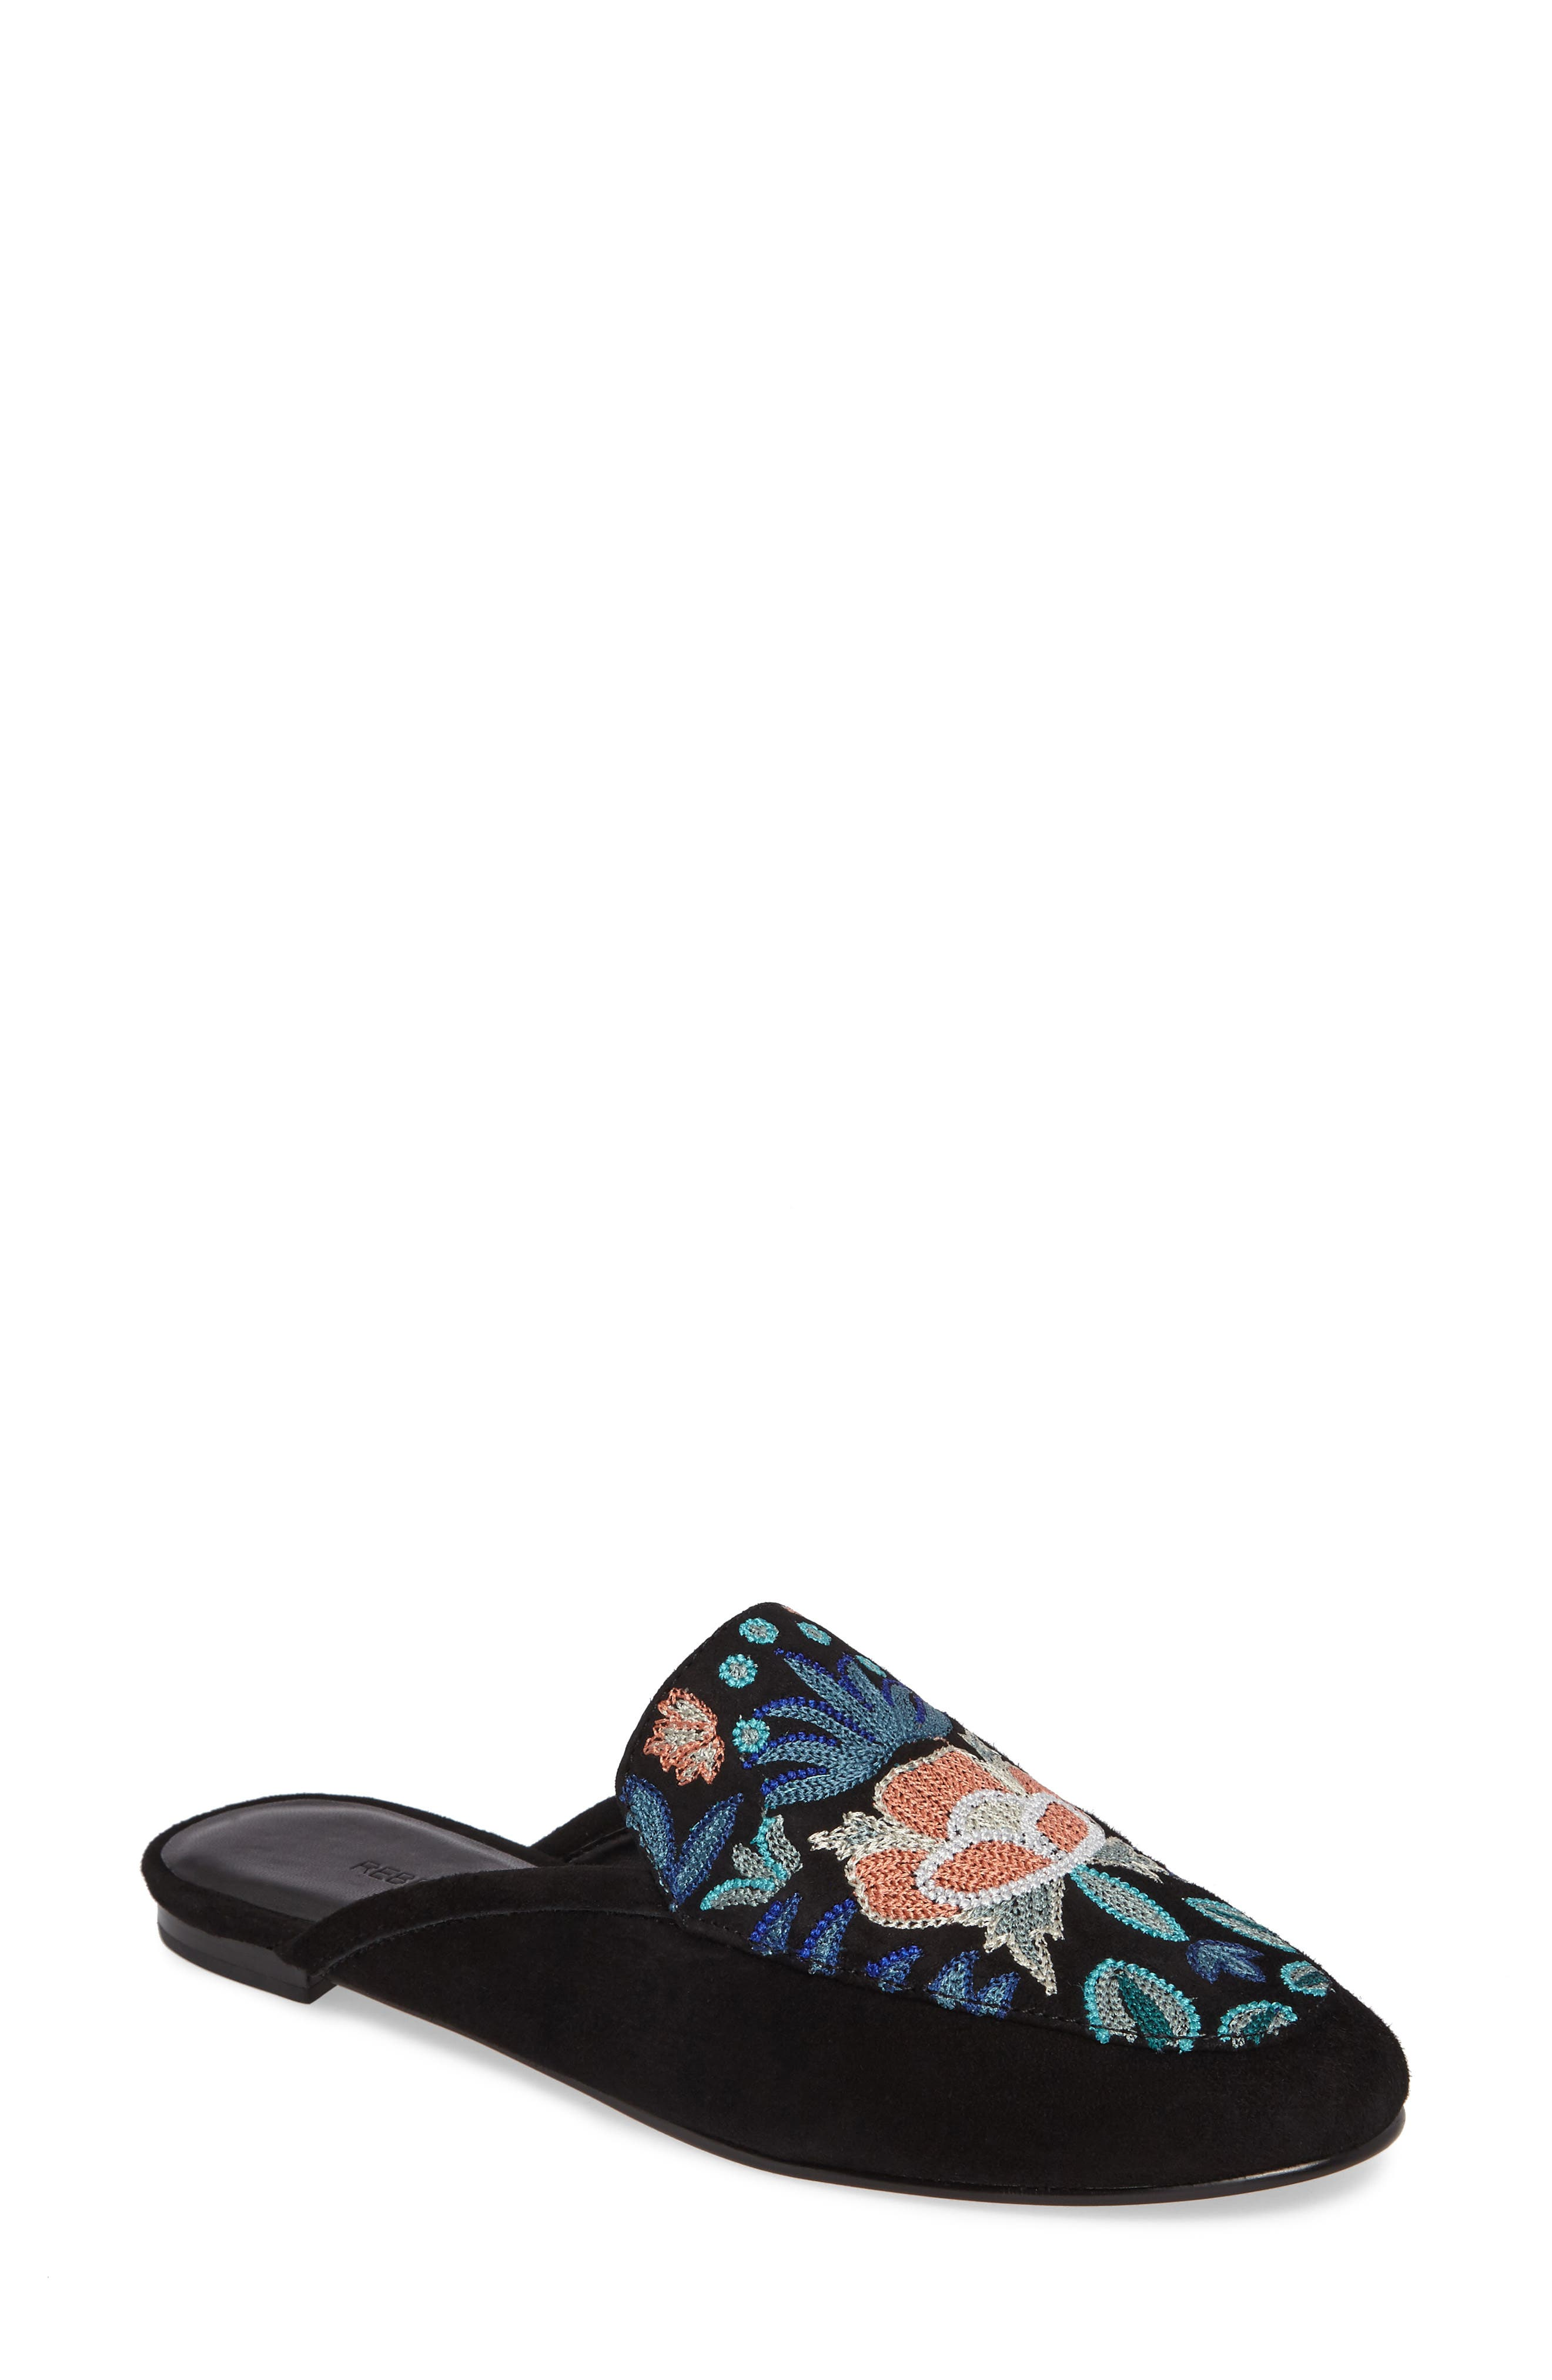 REBECCA MINKOFF Raylee Floral Loafer Mule